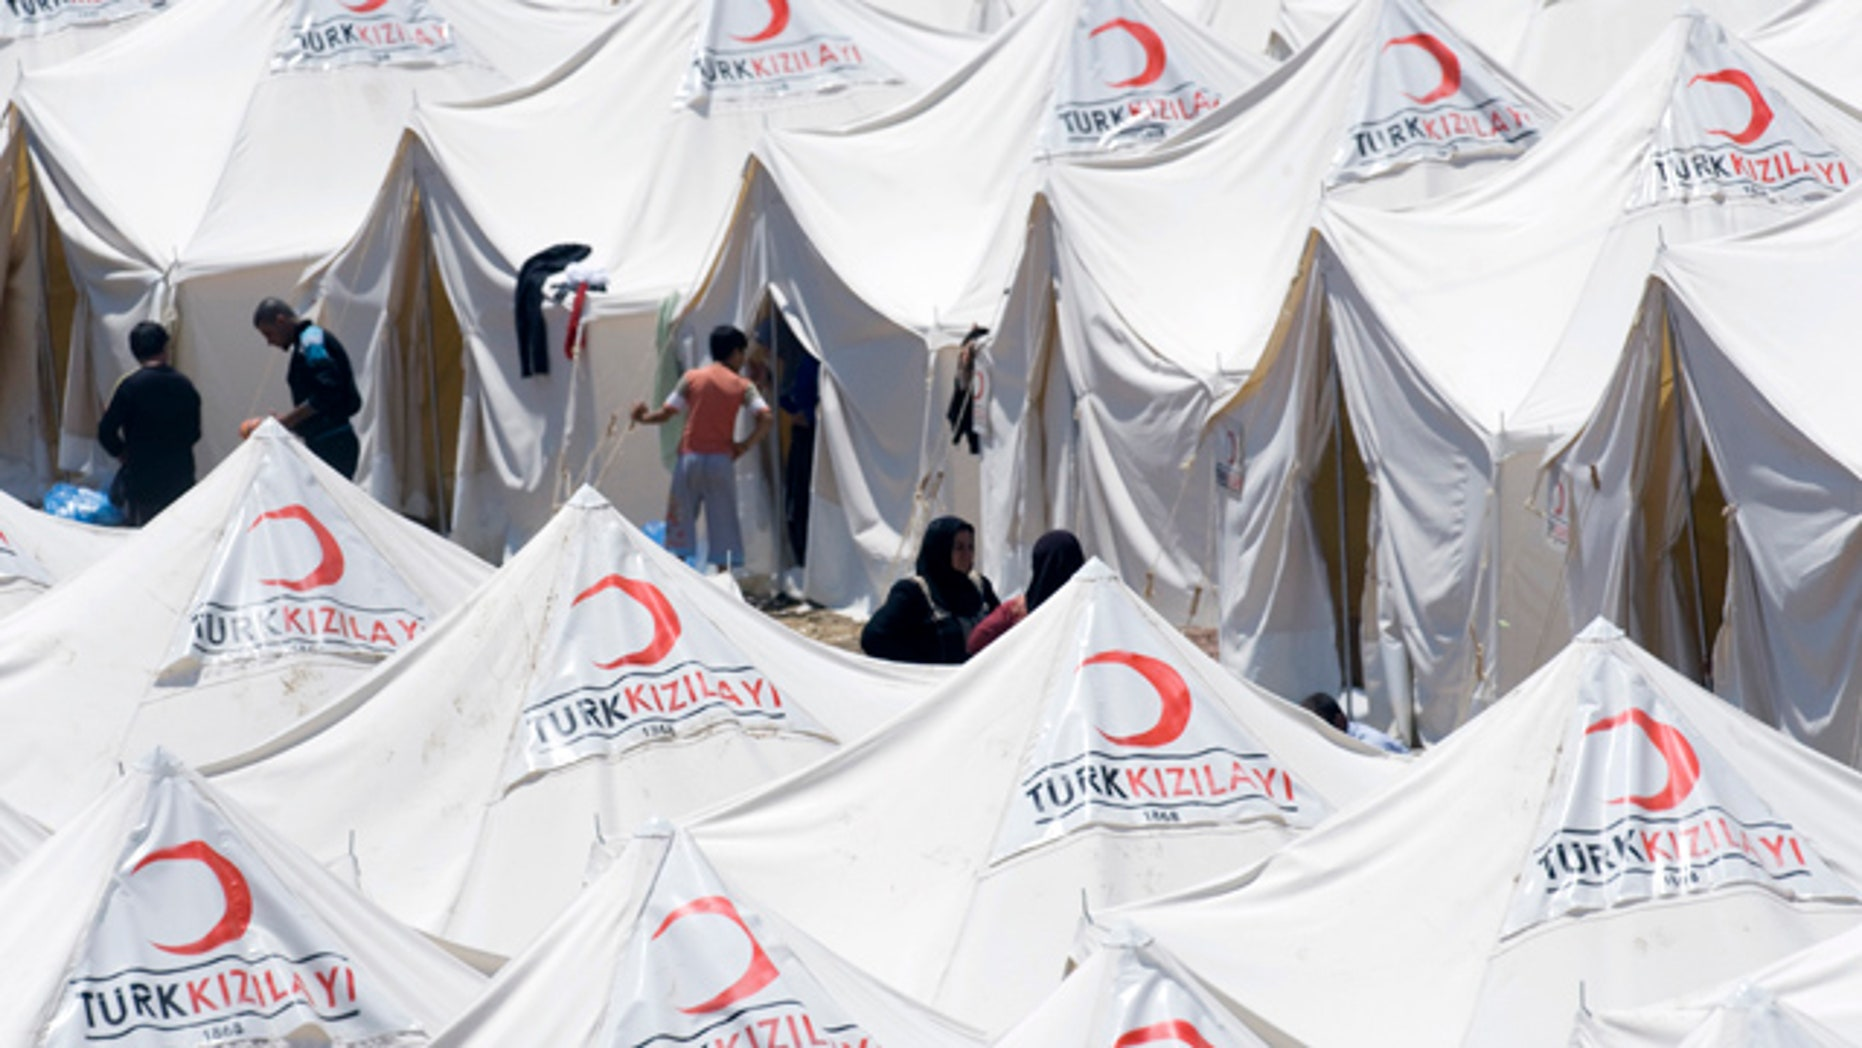 June 19: Syrian refugees are seen in a newly opened refugee camp in Yayladagi, Turkey.